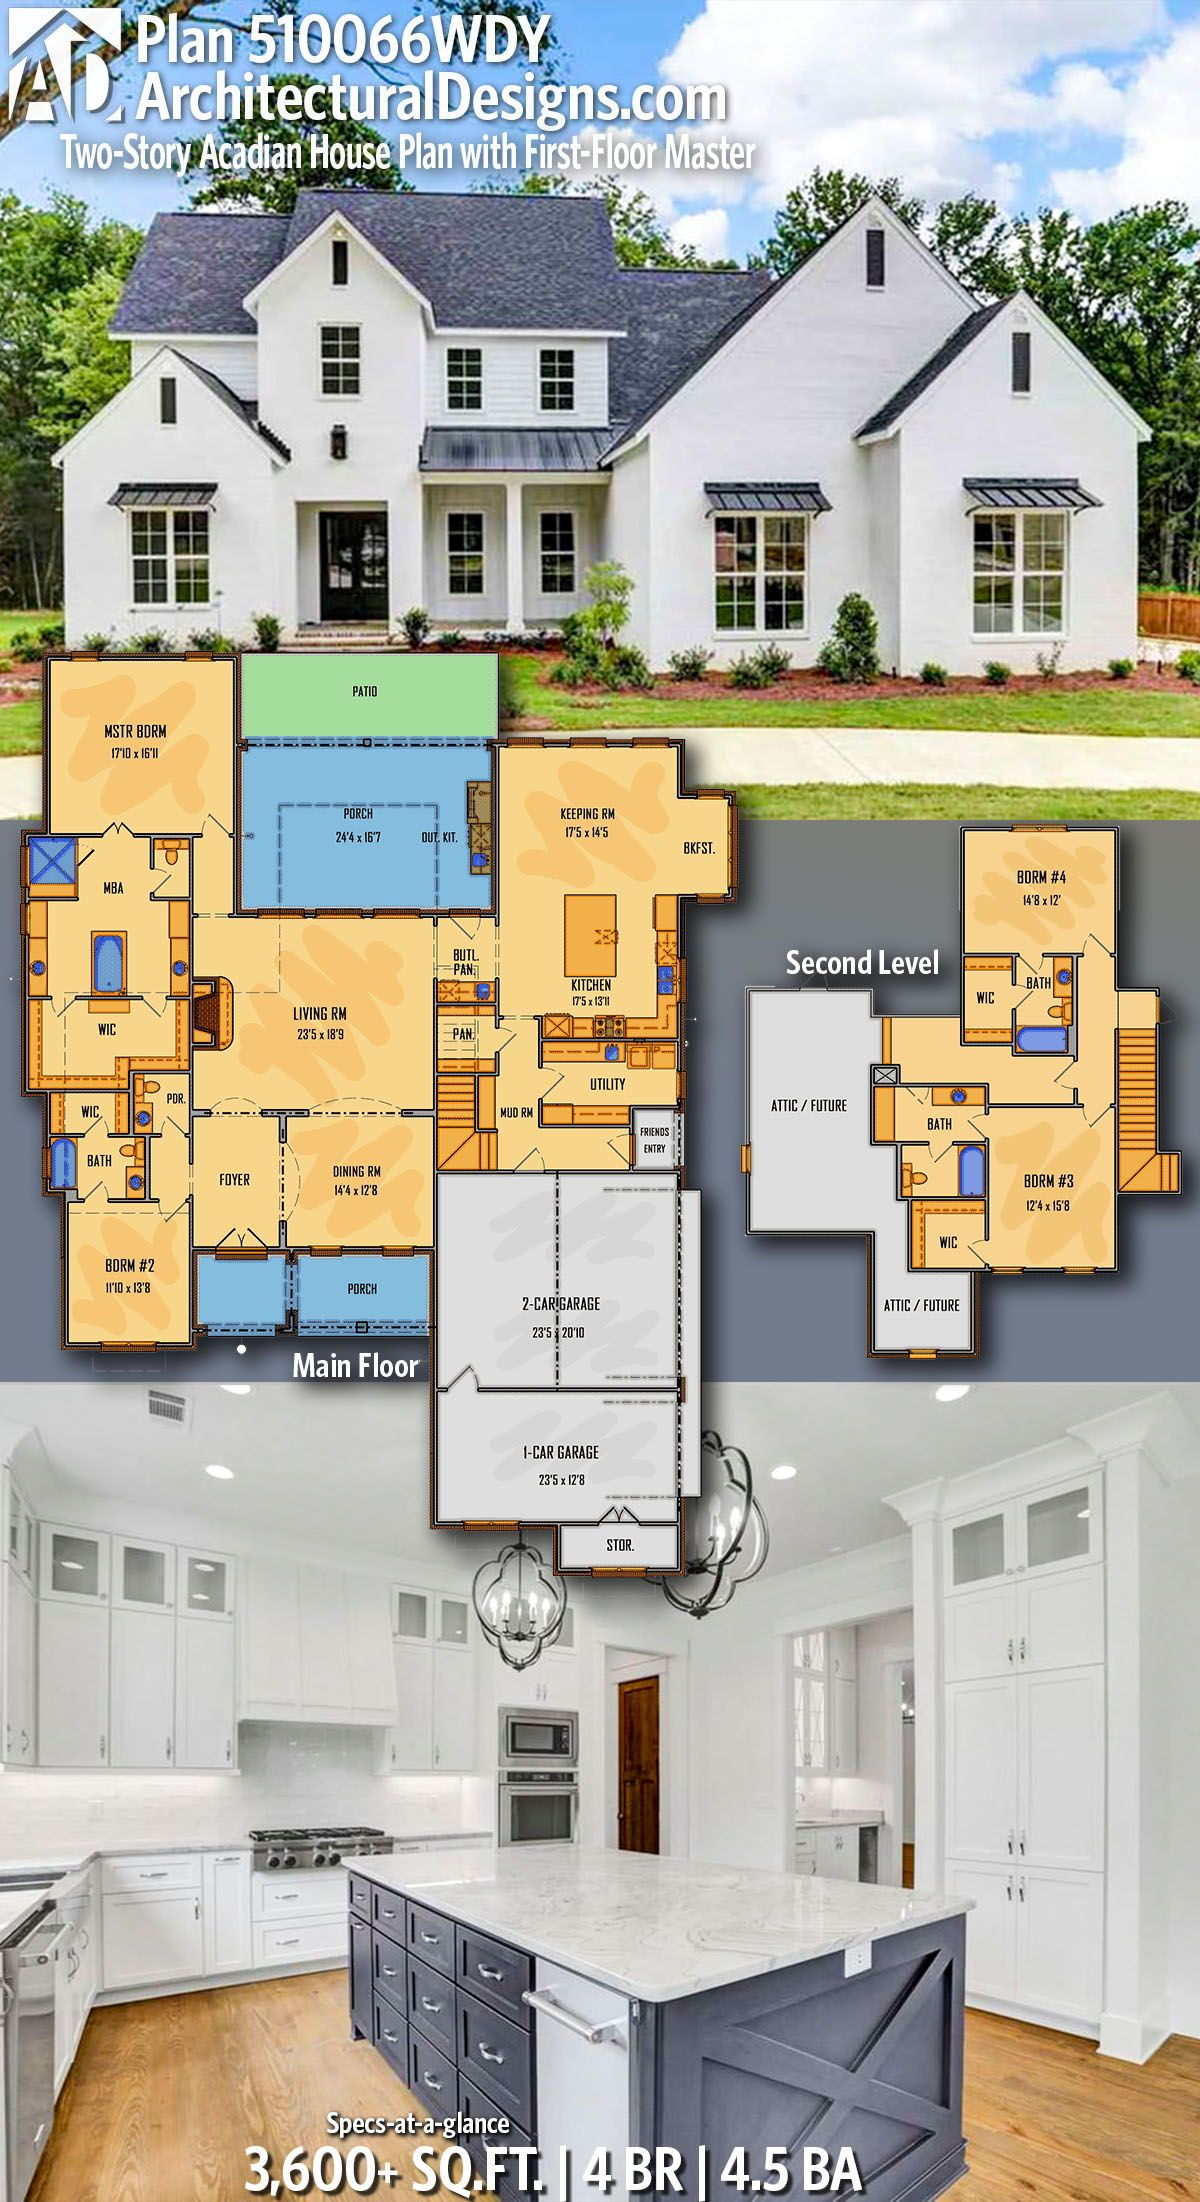 Plan 510066wdy Two Story Acadian House Plan With First Floor Master Acadian House Plans House Plans House Design